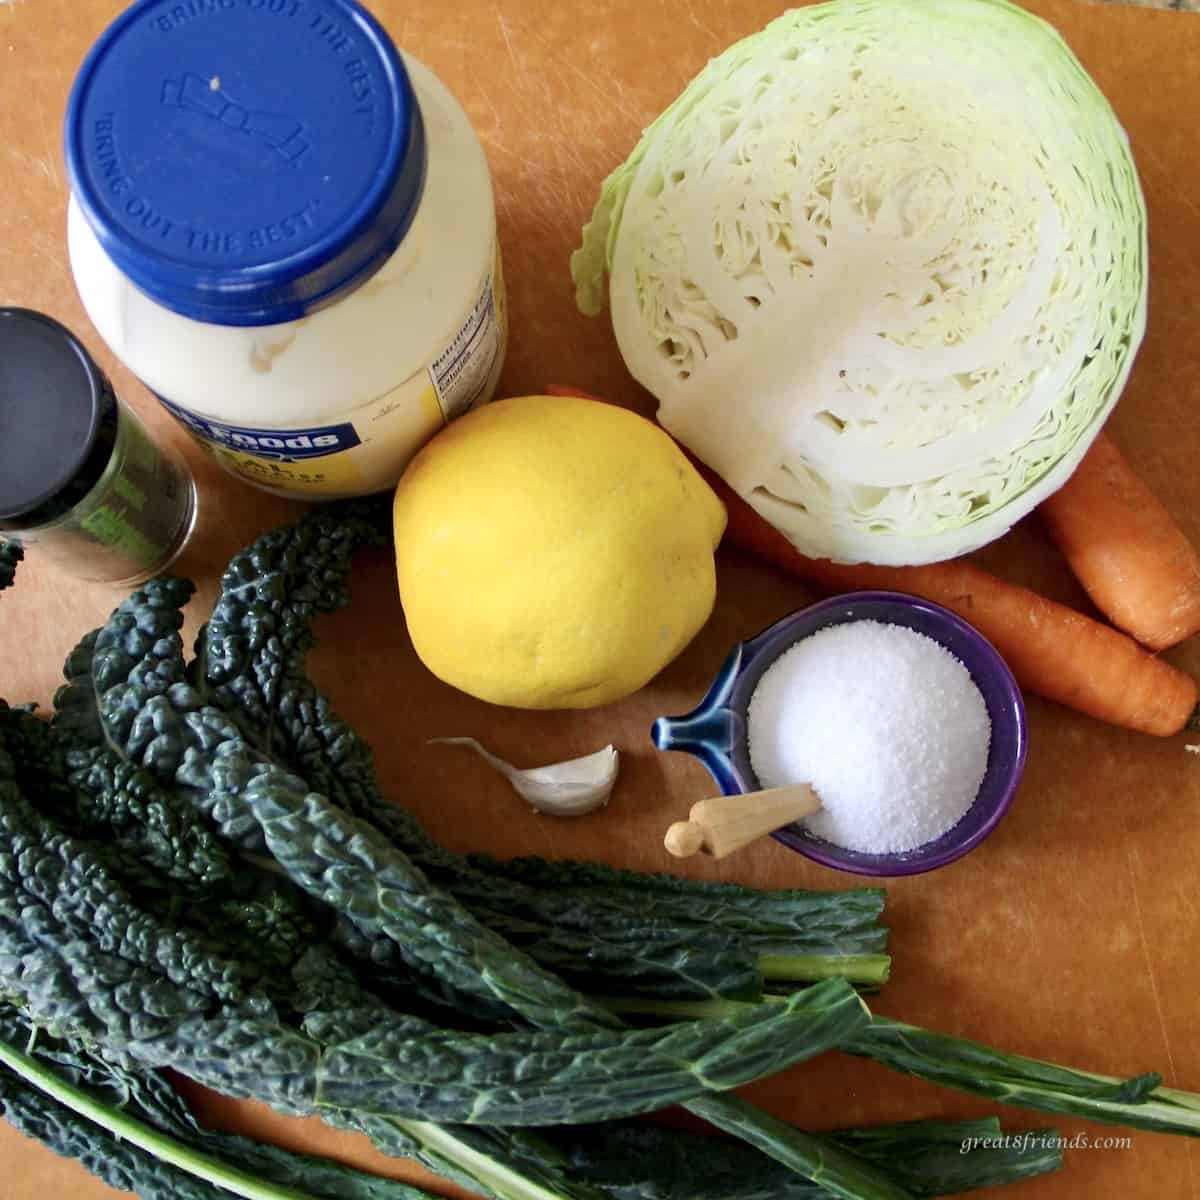 Ingredients to prepare a kale and cabbage slaw with a lemon aioli dressing.